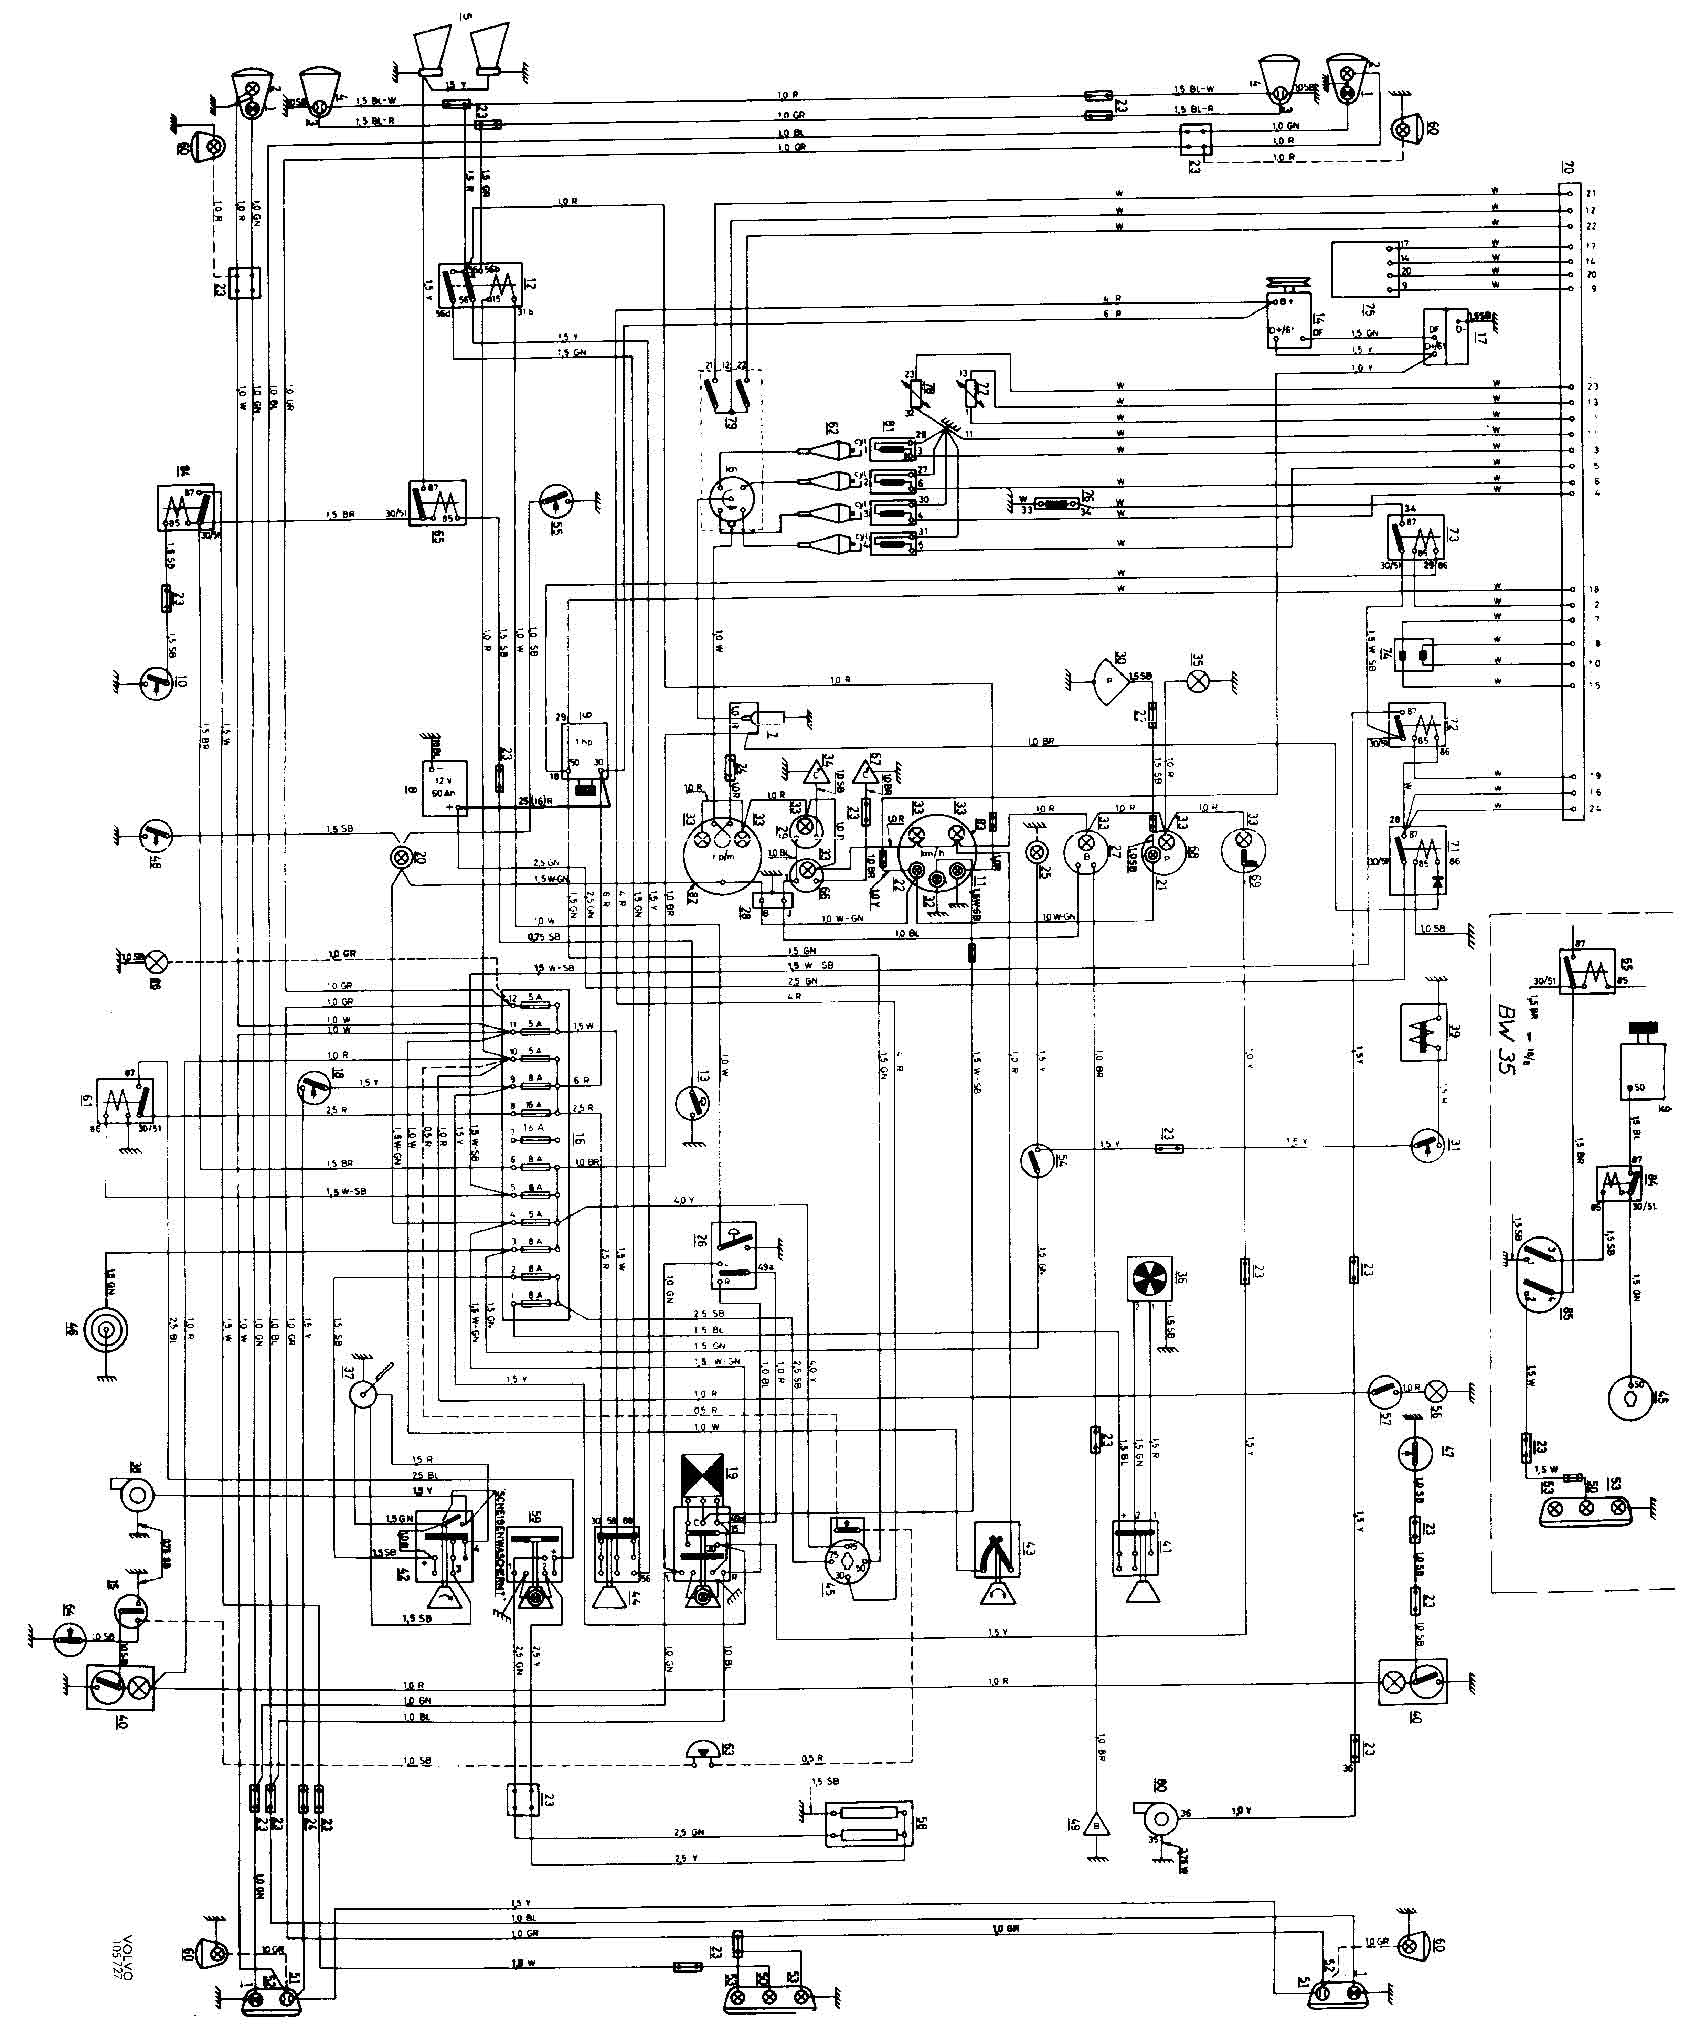 1800E Wiring Diagram 100 [ volvo 850 fog light wiring diagram ] buy perodua axia Volvo 850 Engine Diagram at crackthecode.co